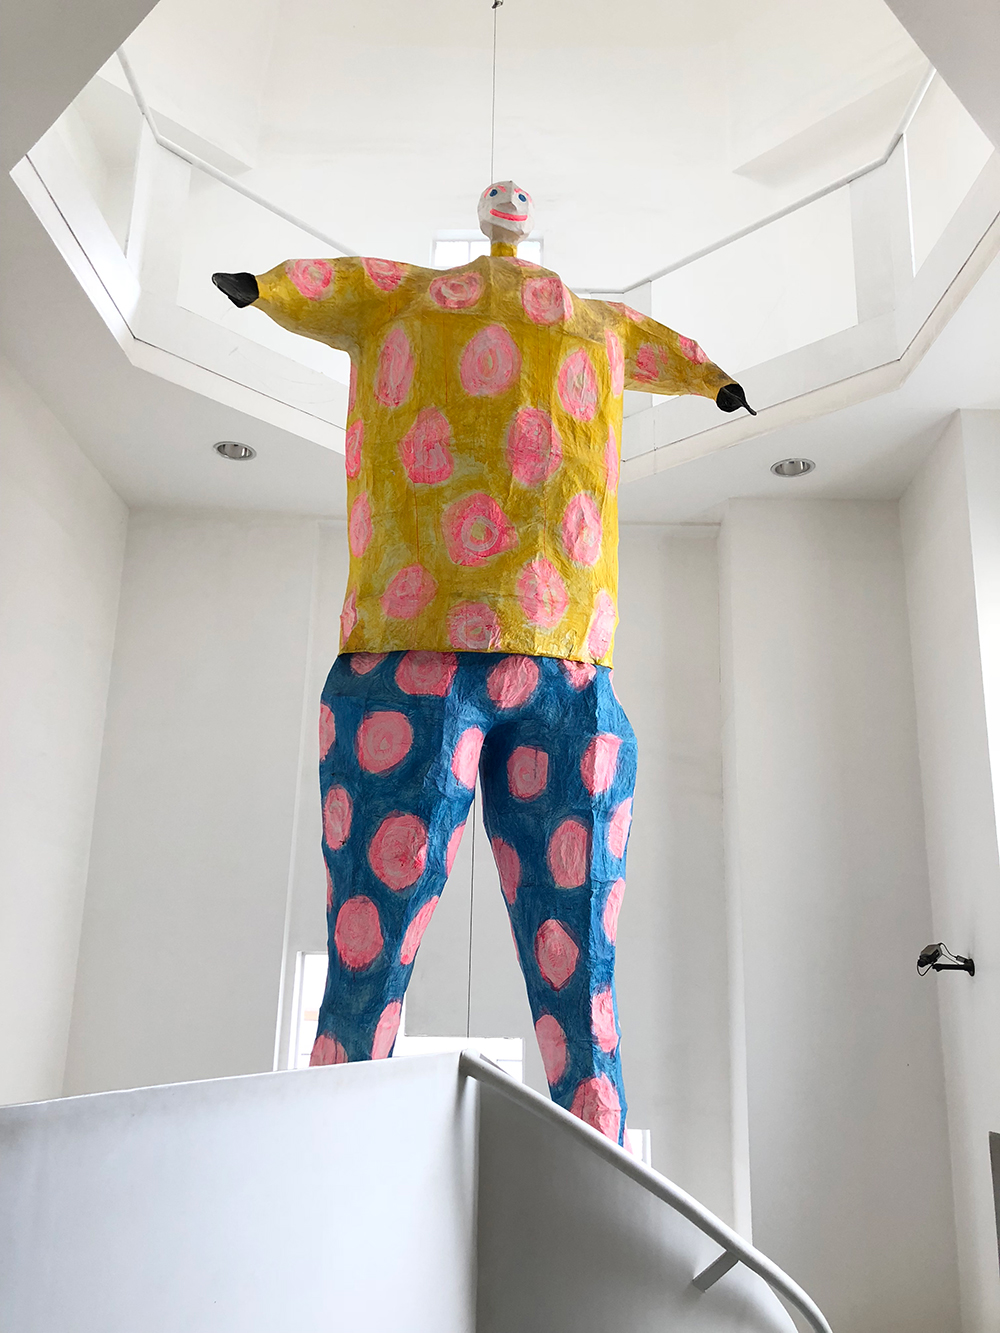 a colorful papier mache man floats in a white museum space